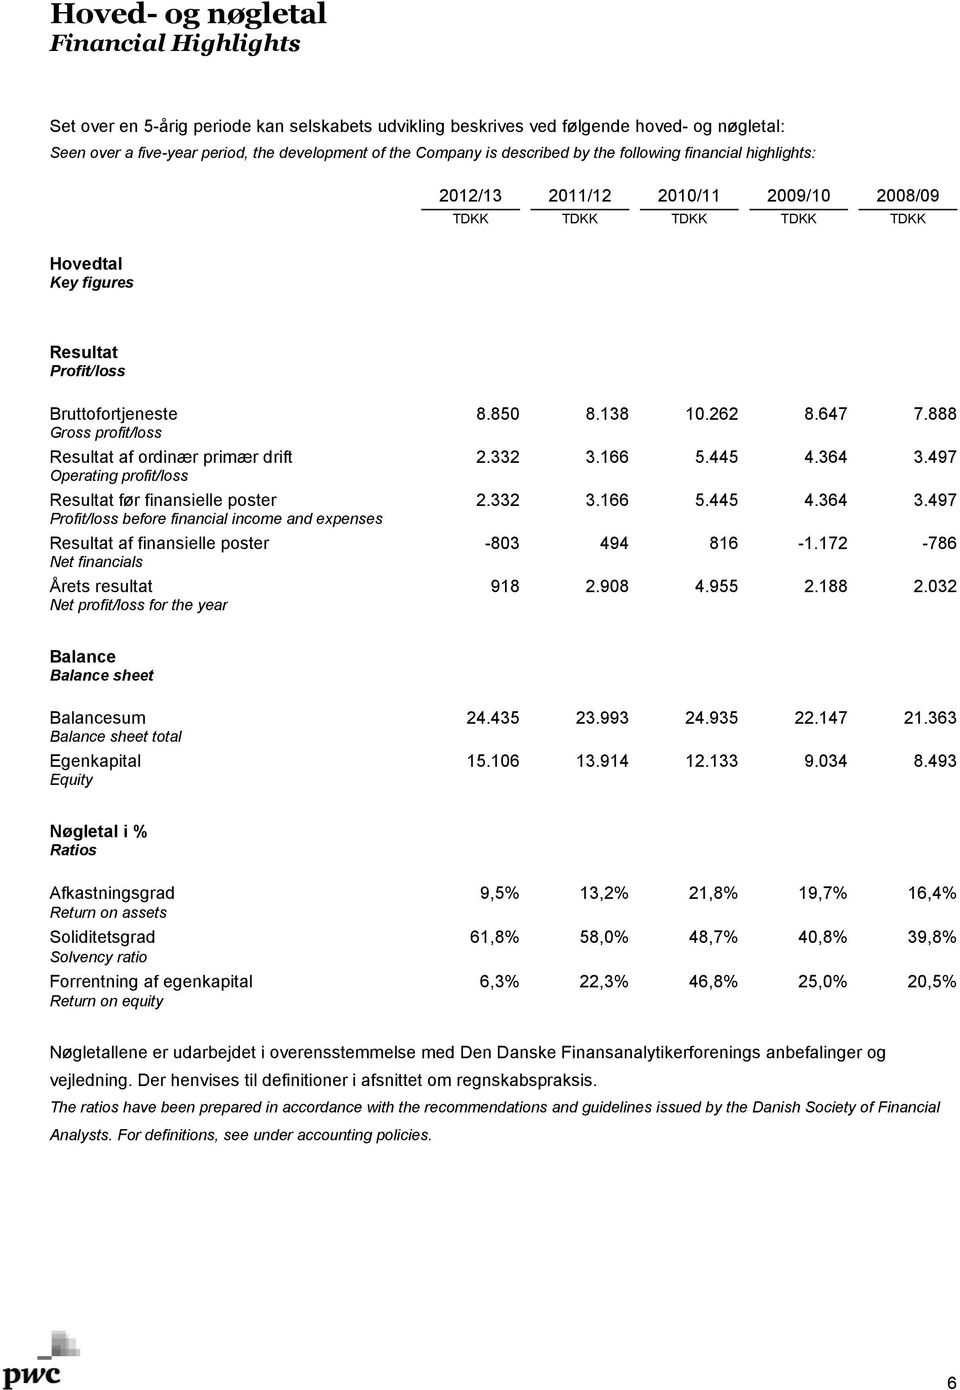 888 Gross profit/loss Resultatafordinærprimærdrift 2.332 3.166 5.445 4.364 3.497 Operating profit/loss Resultatførfinansieleposter 2.332 3.166 5.445 4.364 3.497 Profit/loss before financial income and expenses Resultat af finansielle poster -803 494 816-1.